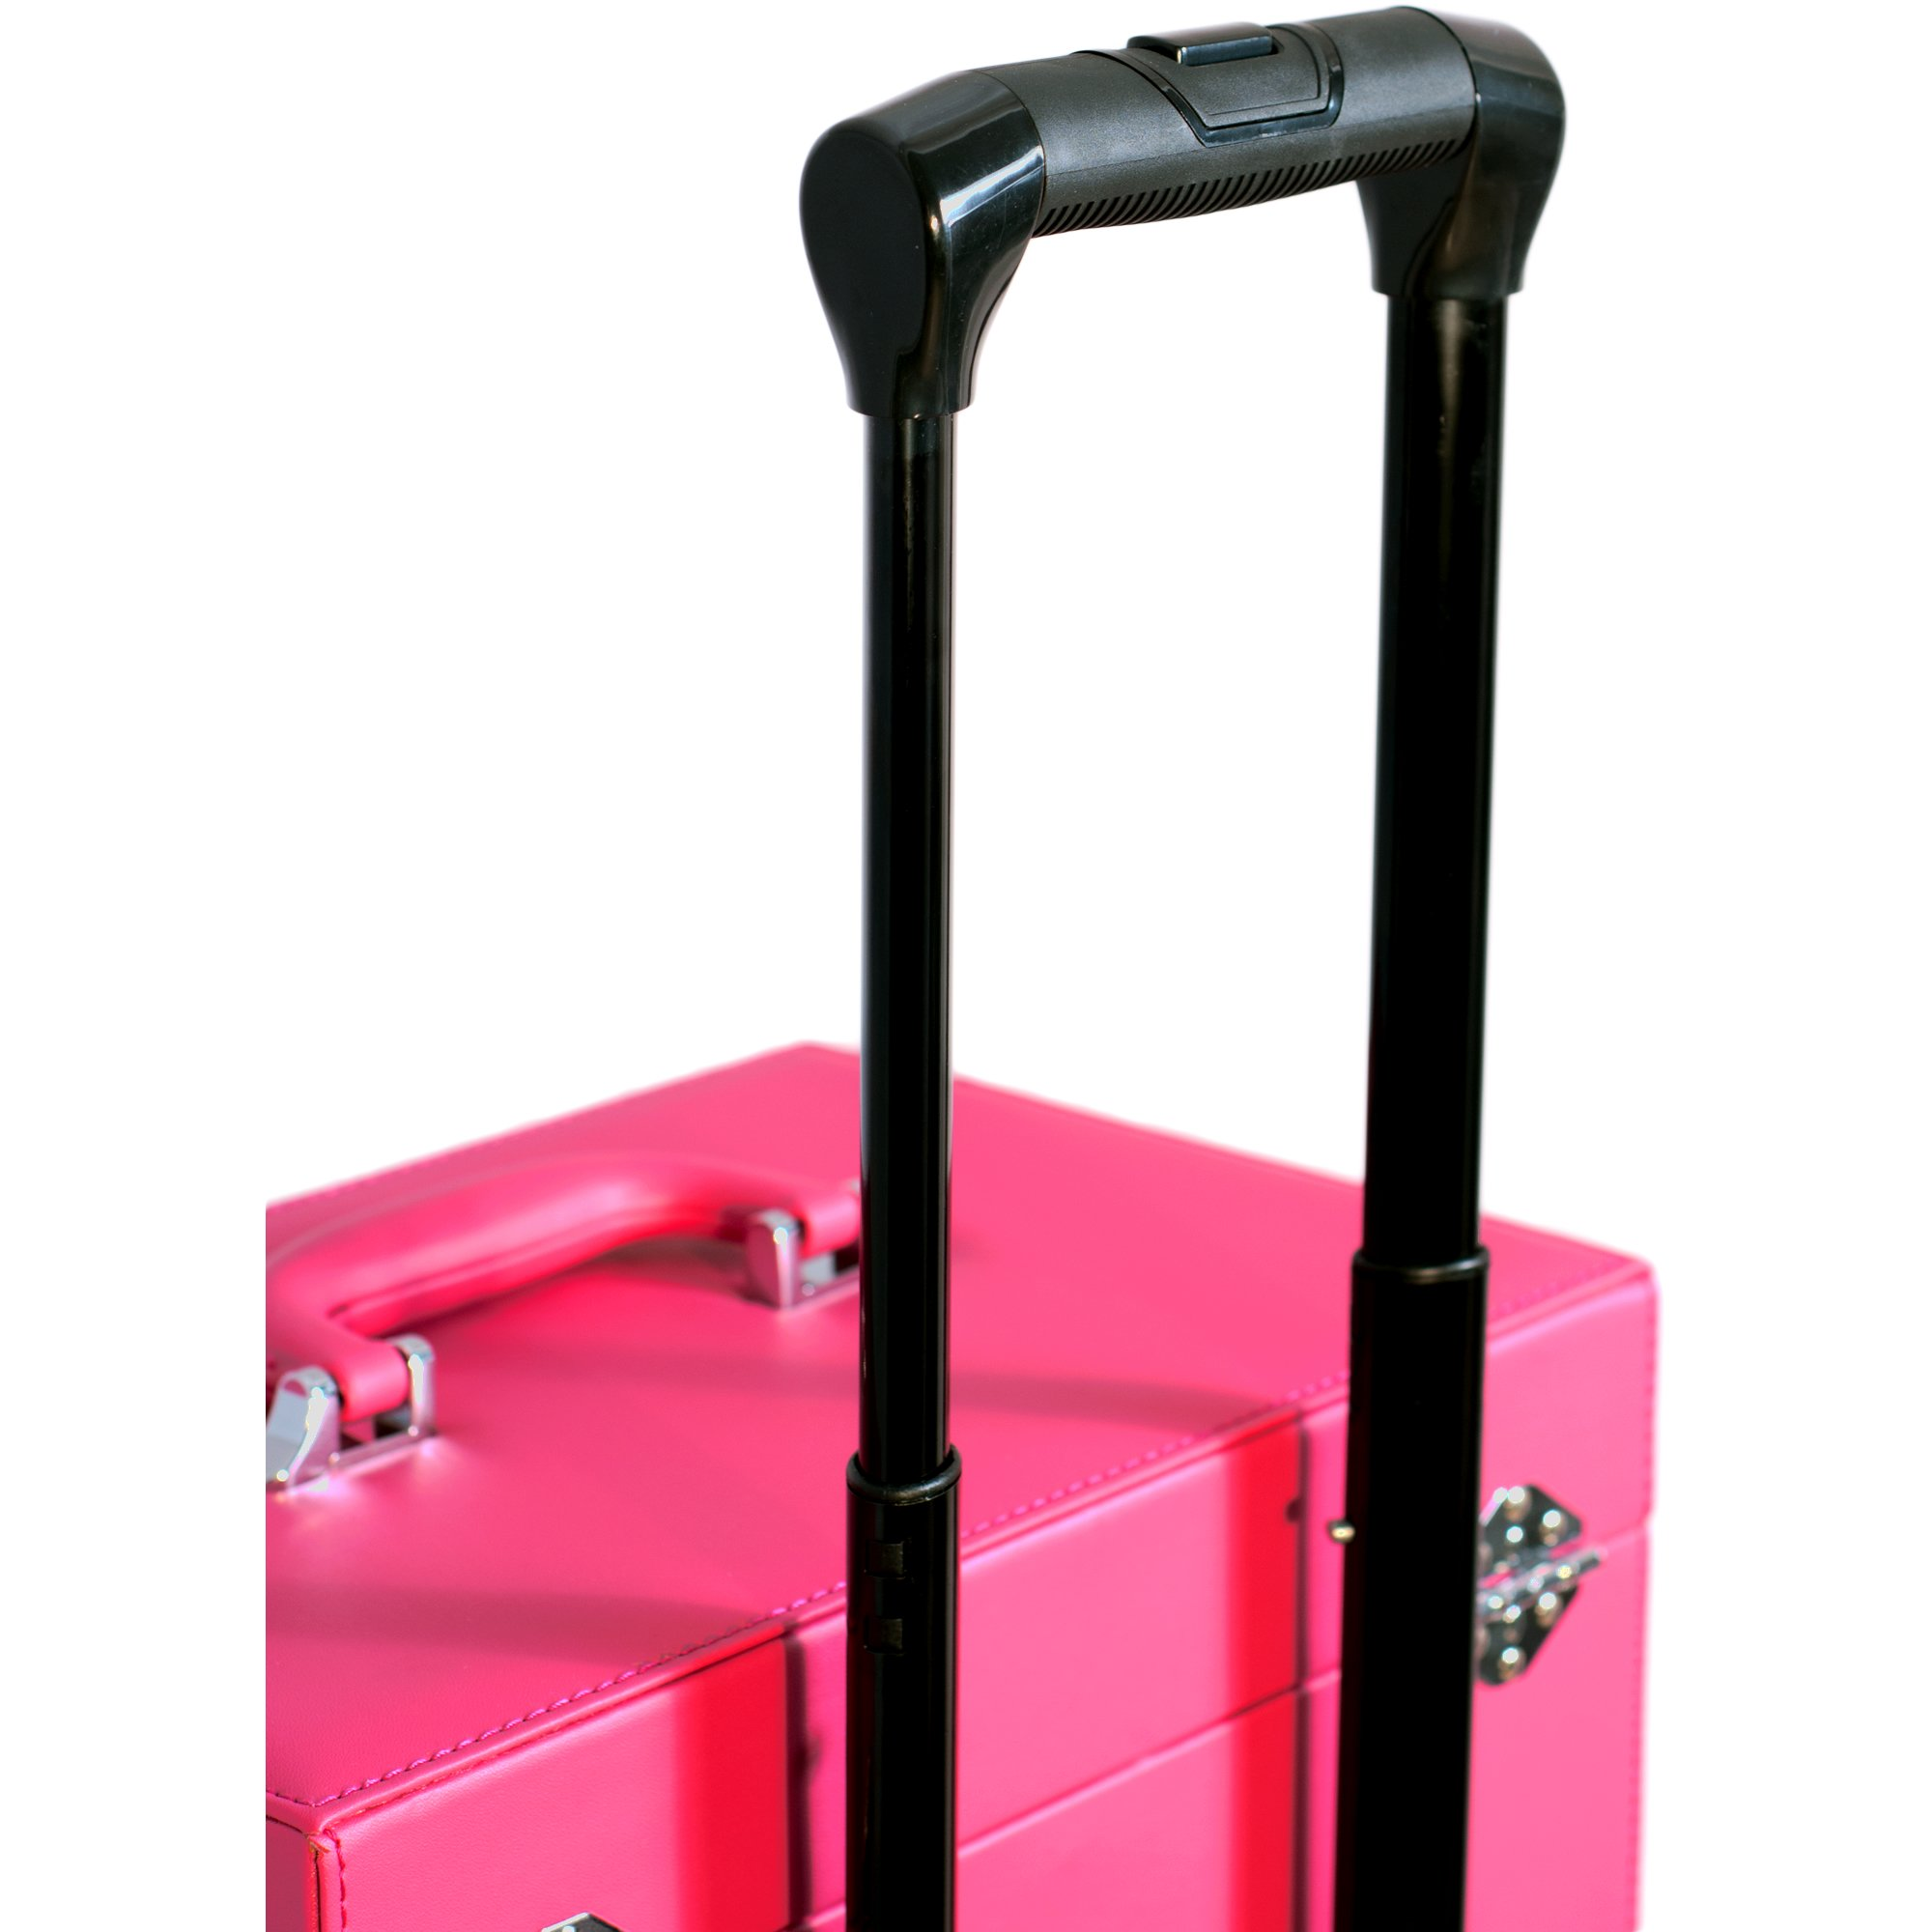 Sunrise Faux Leather Professional Nail Artistry 4 Wheel Rolling Makeup Case, Pink by SunRise (Image #3)